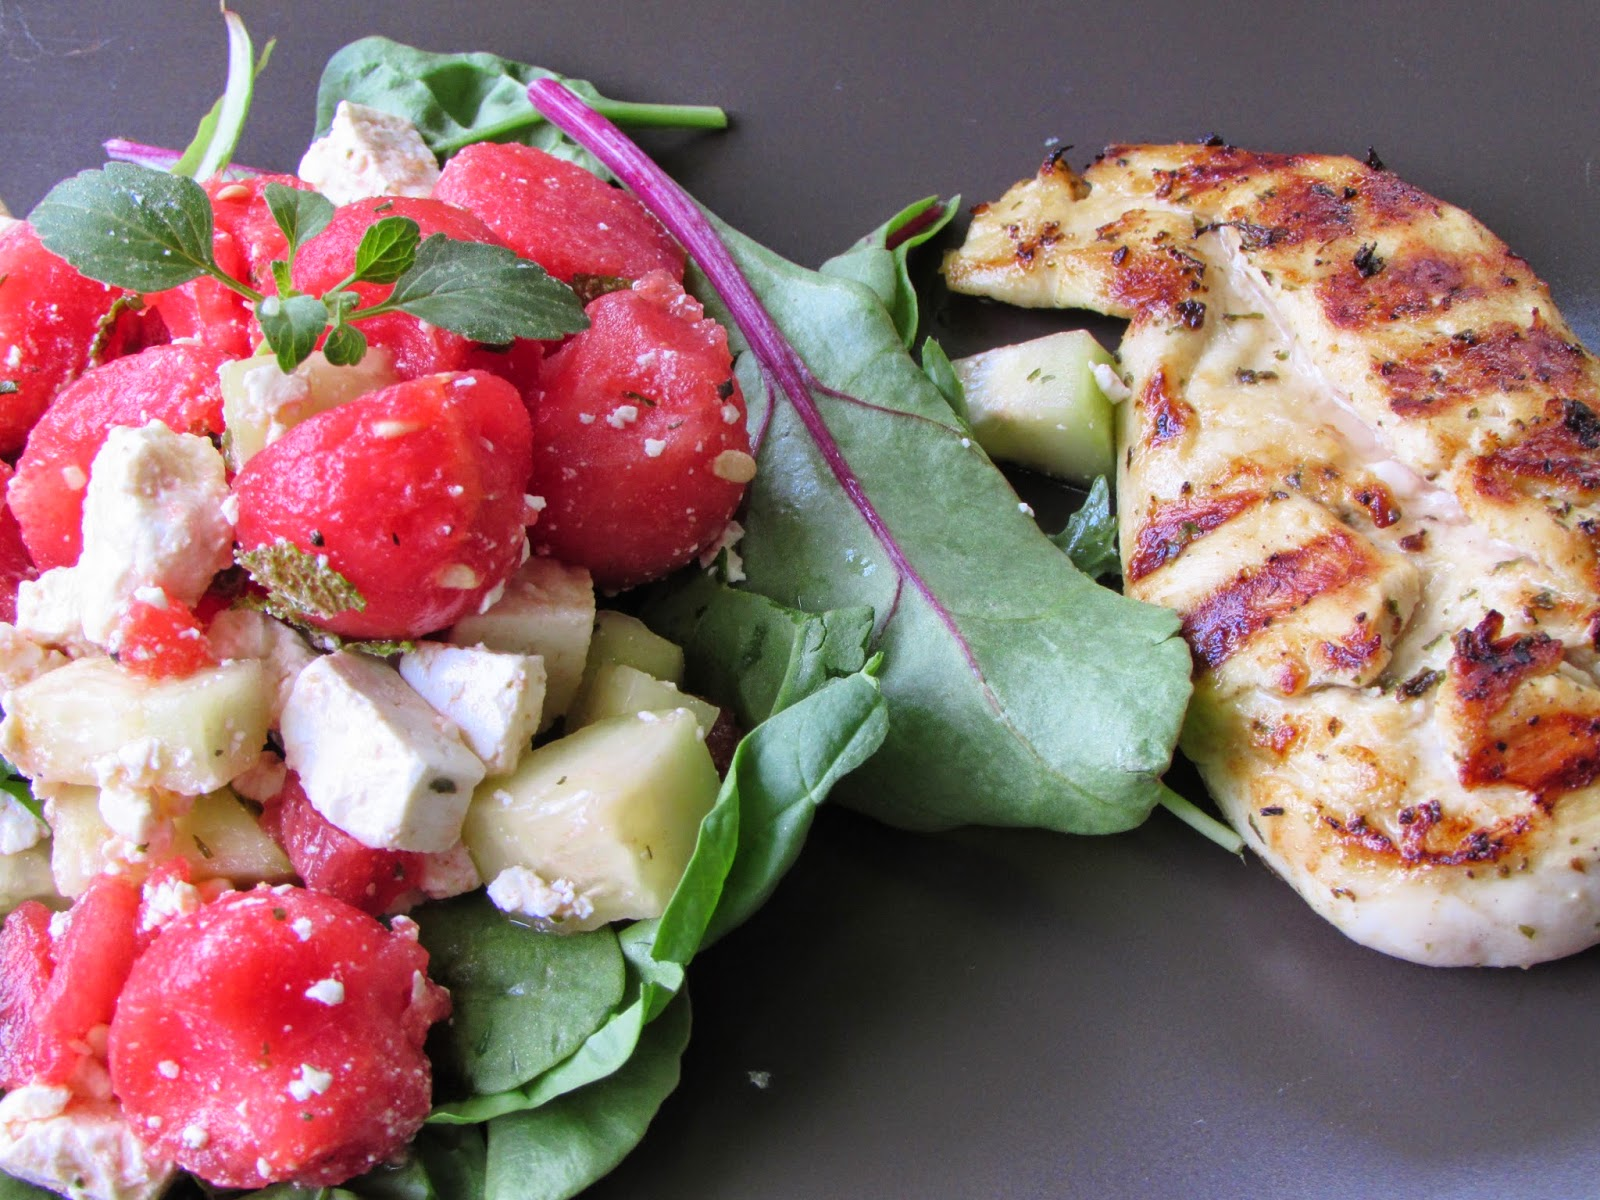 Marinated Grilled Chicken With Watermelon Feta Salad